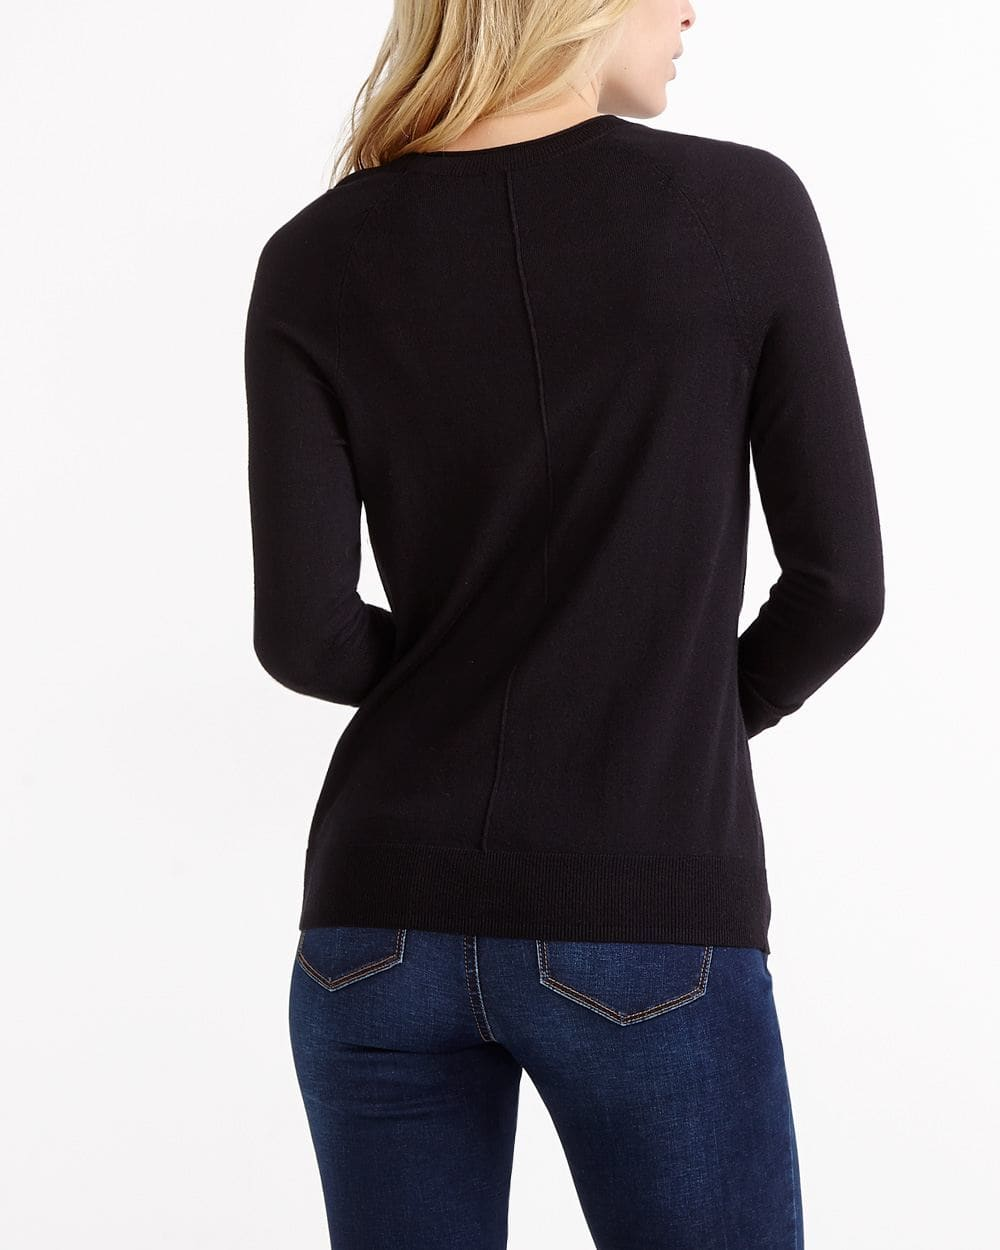 R Essentials ¾ Sleeve Sweater